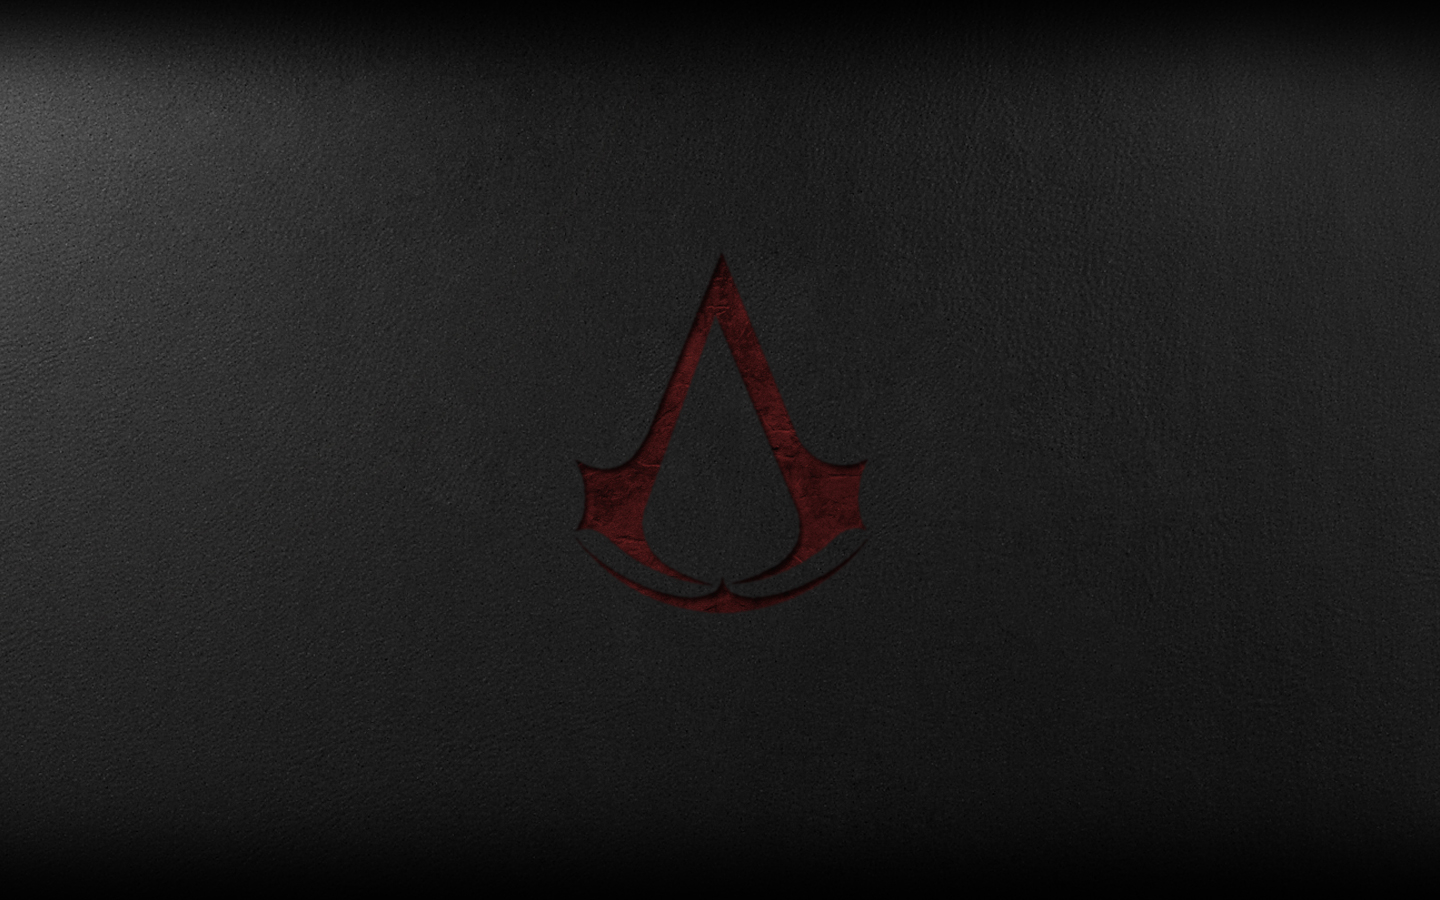 assassins creed symbol AC HD Wallpaper